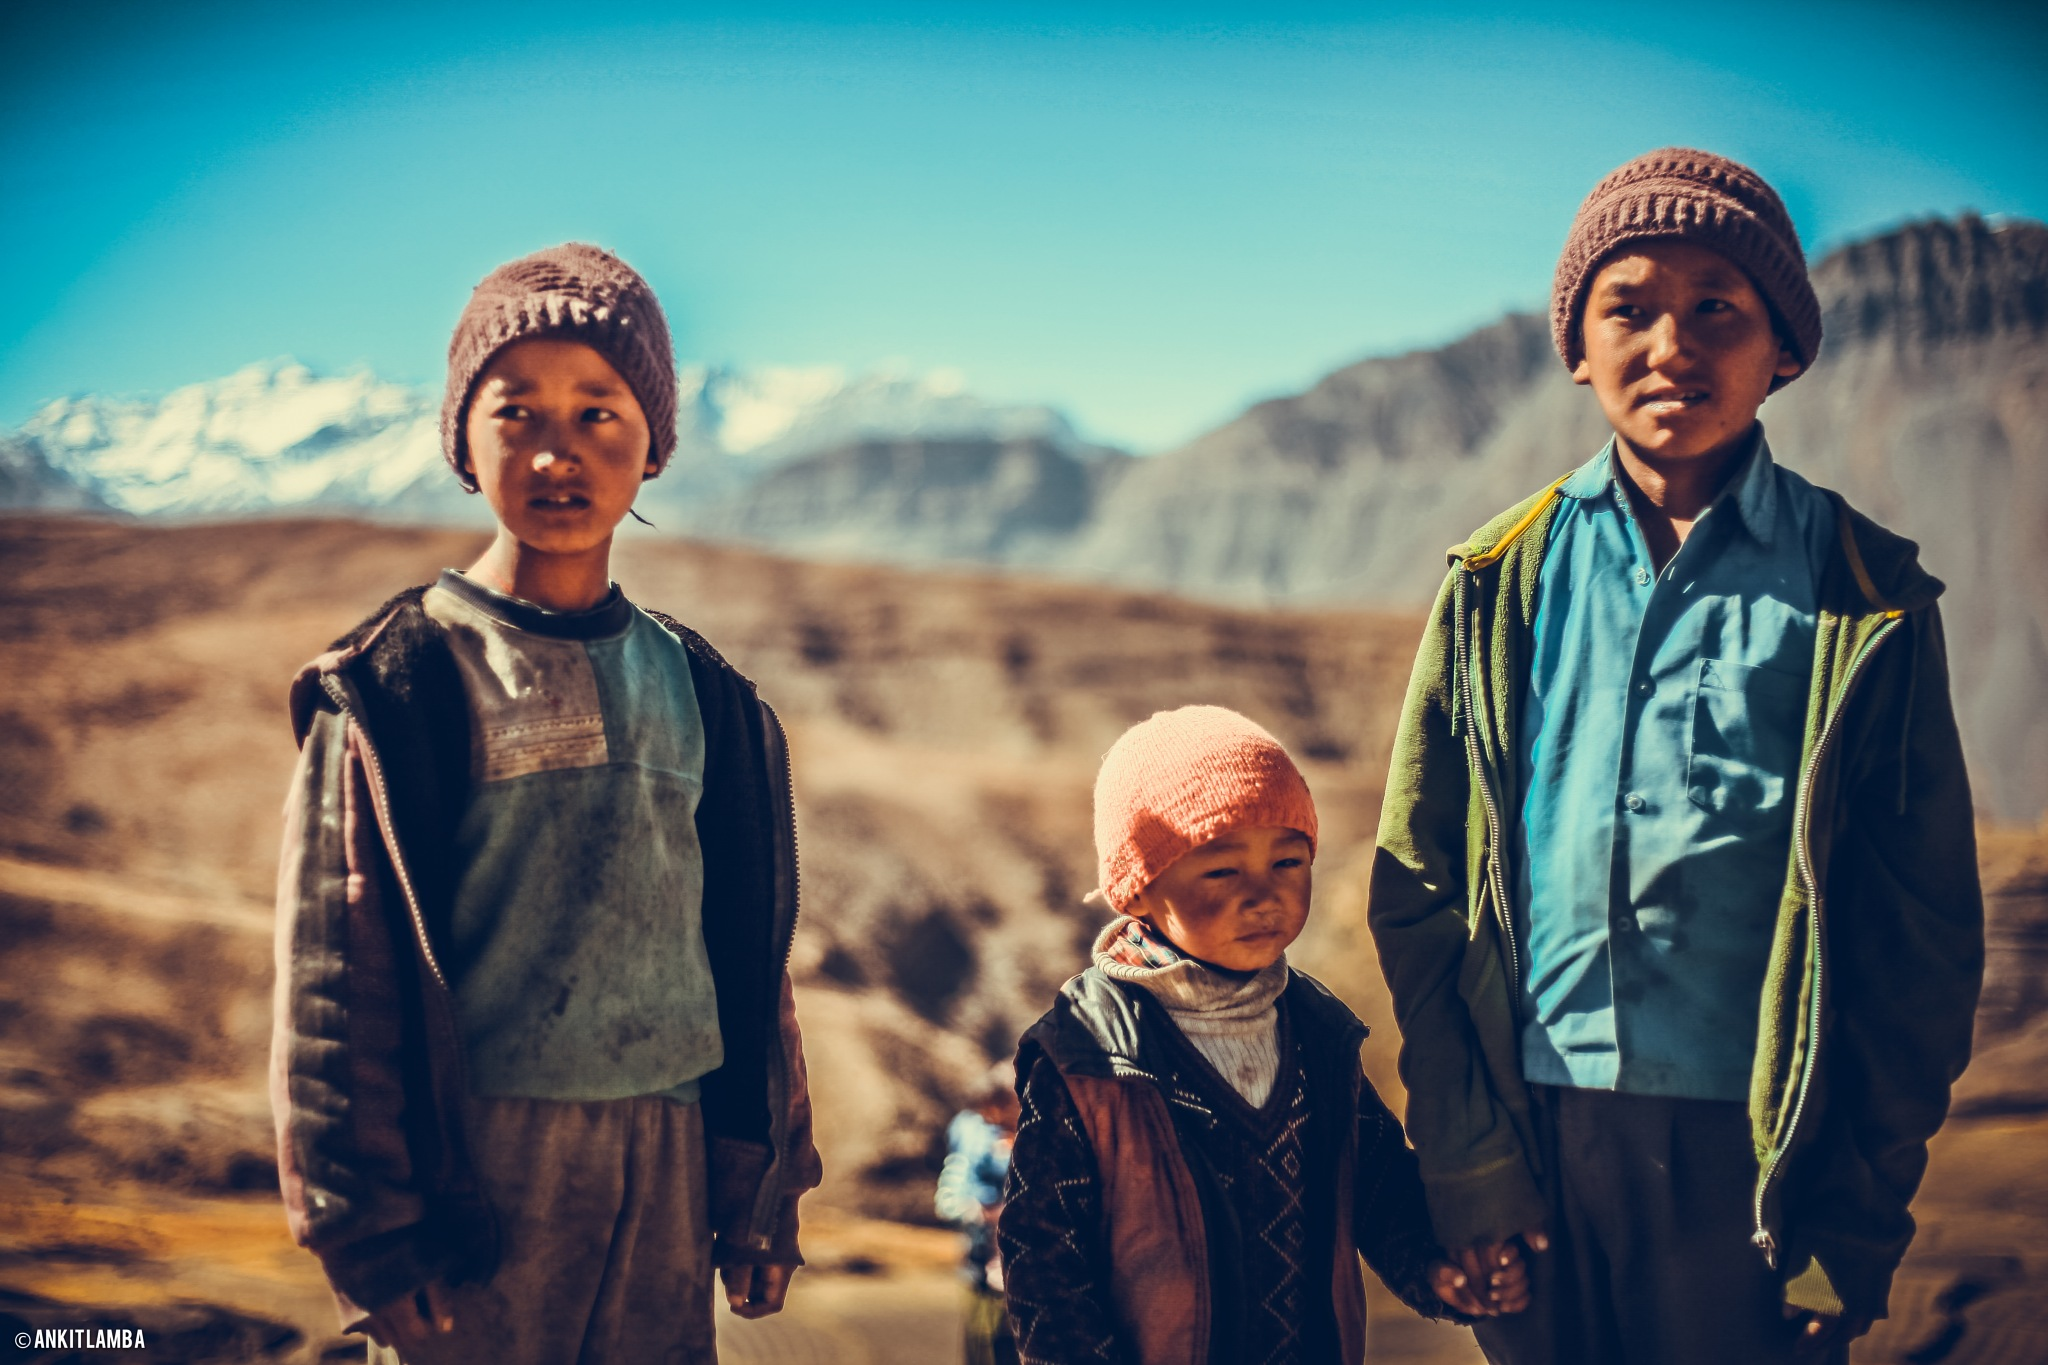 Children Of Hikkim by Ankit Lamba